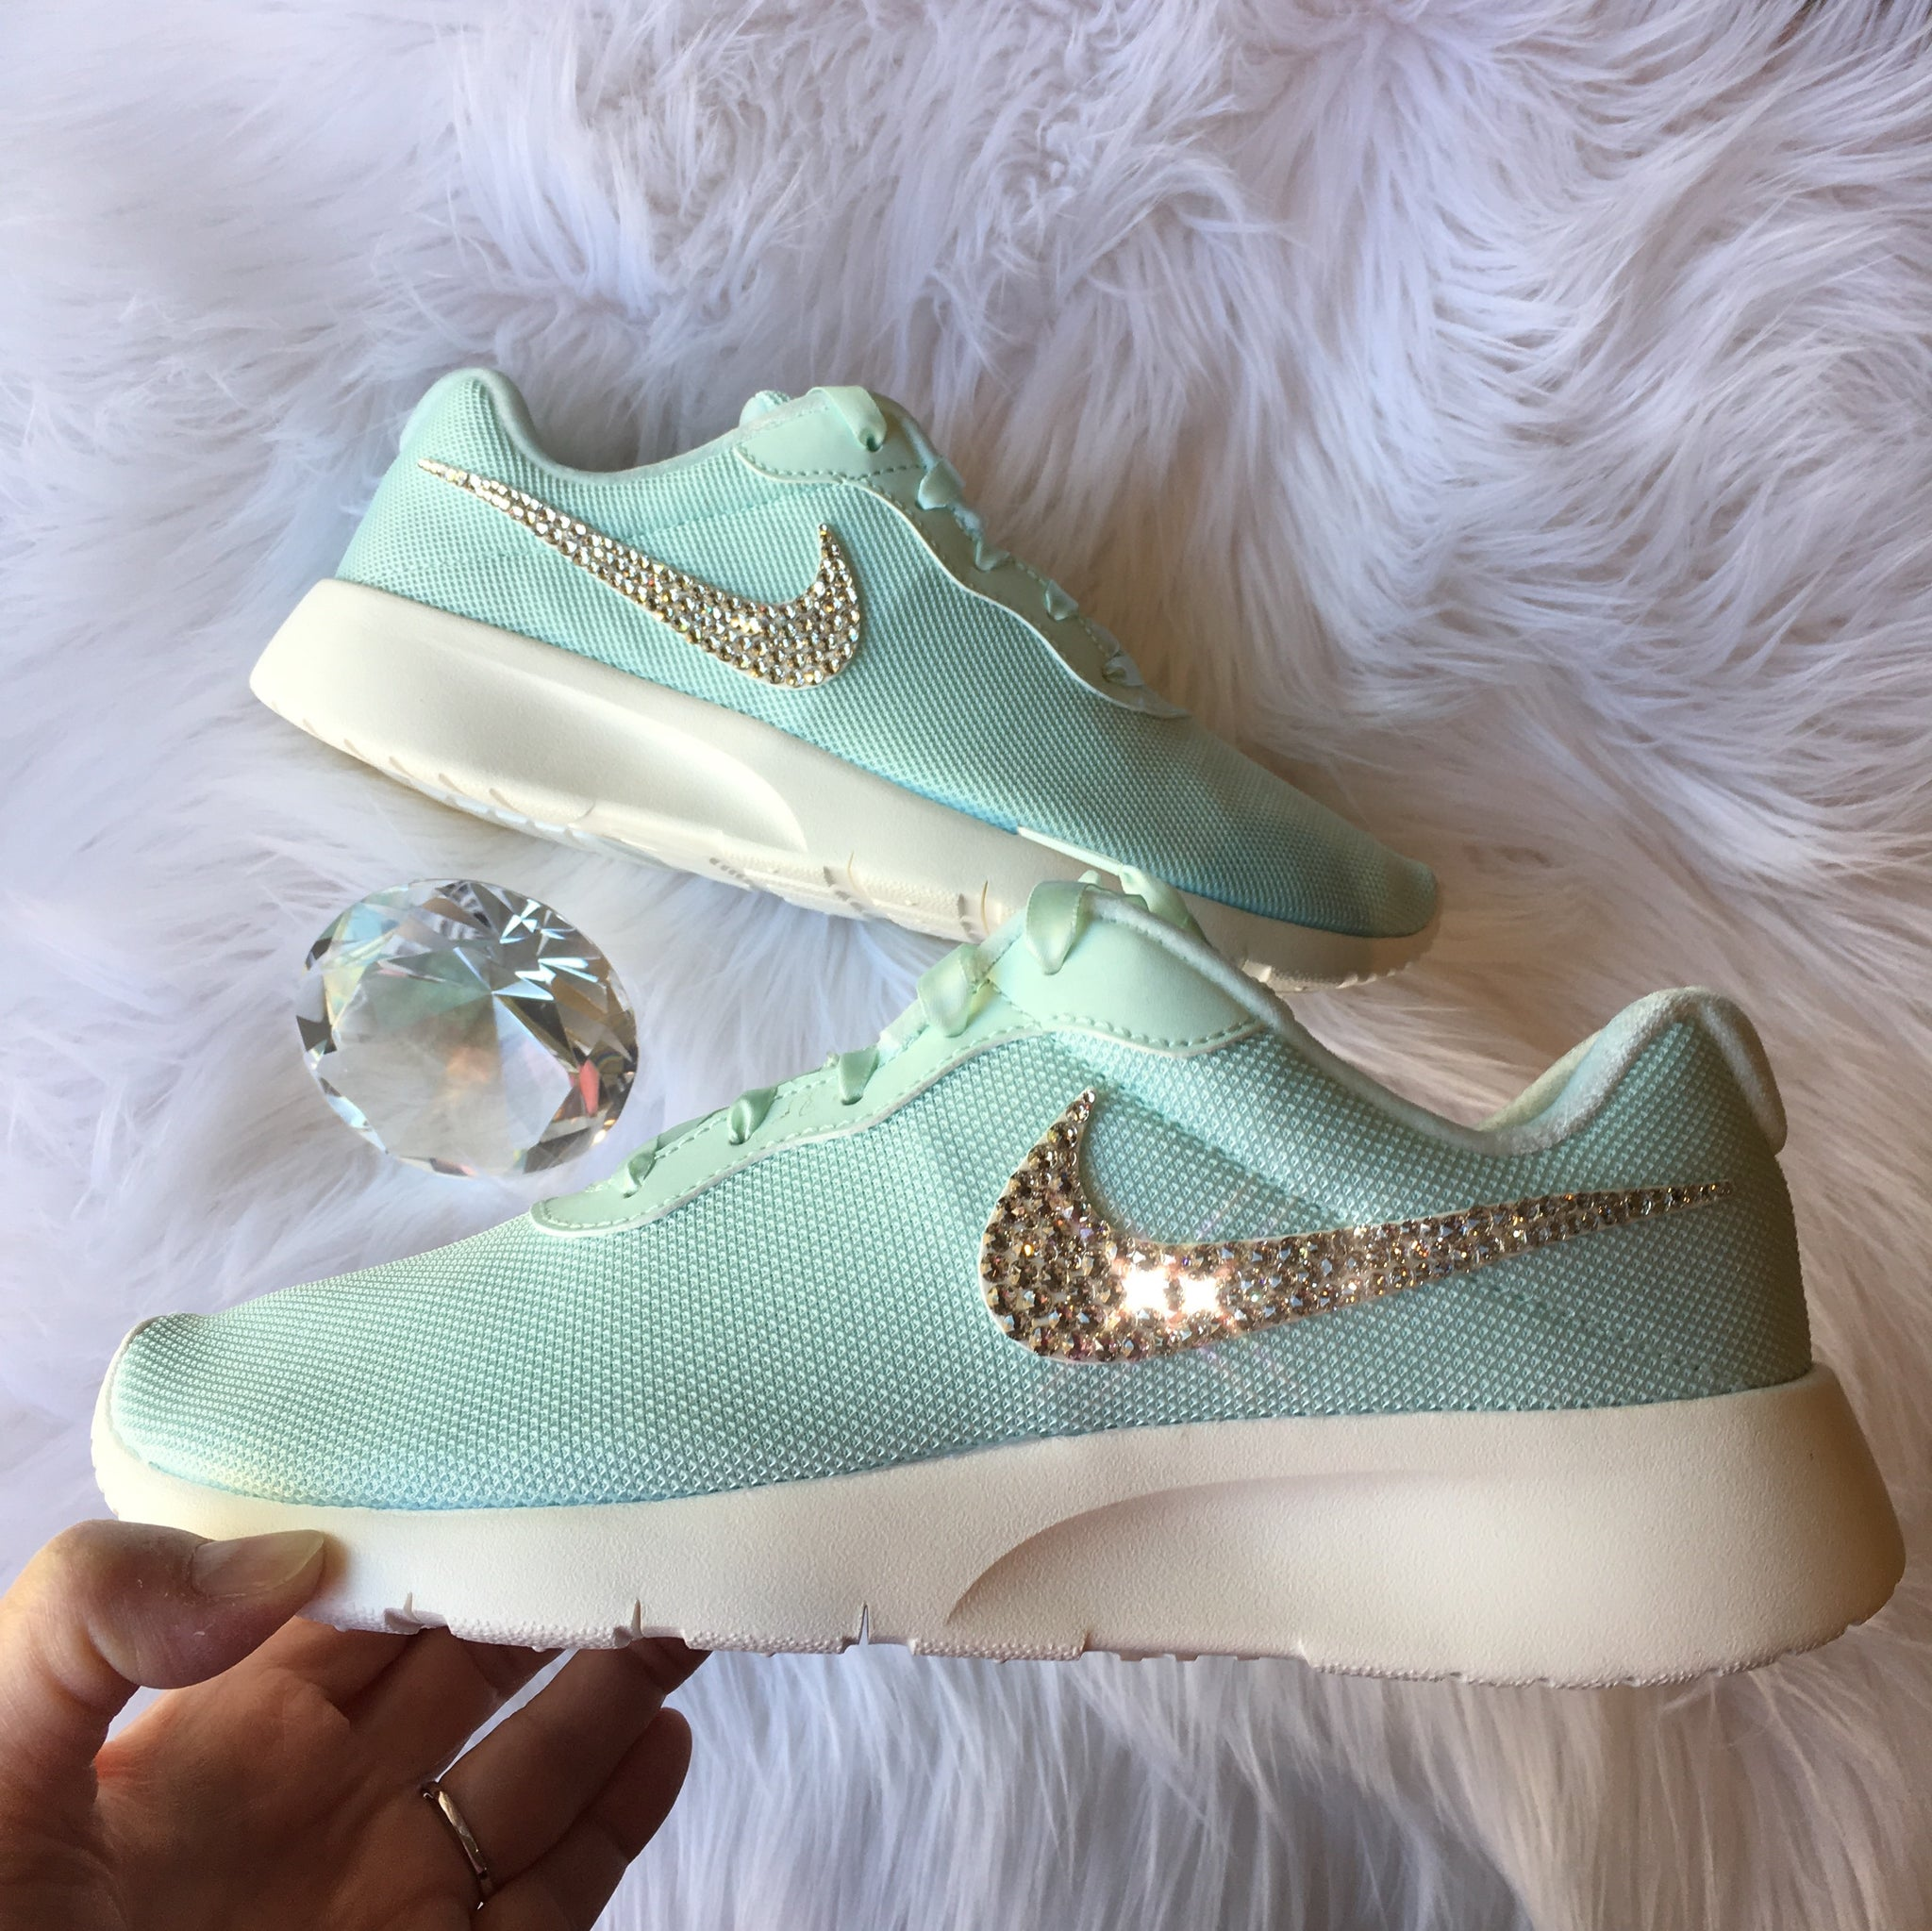 71ff3a0838ad Bling Nike Tanjun Shoes with Swarovski Crystal Bedazzled Swooshes   Igloo    Sail (Mint ...